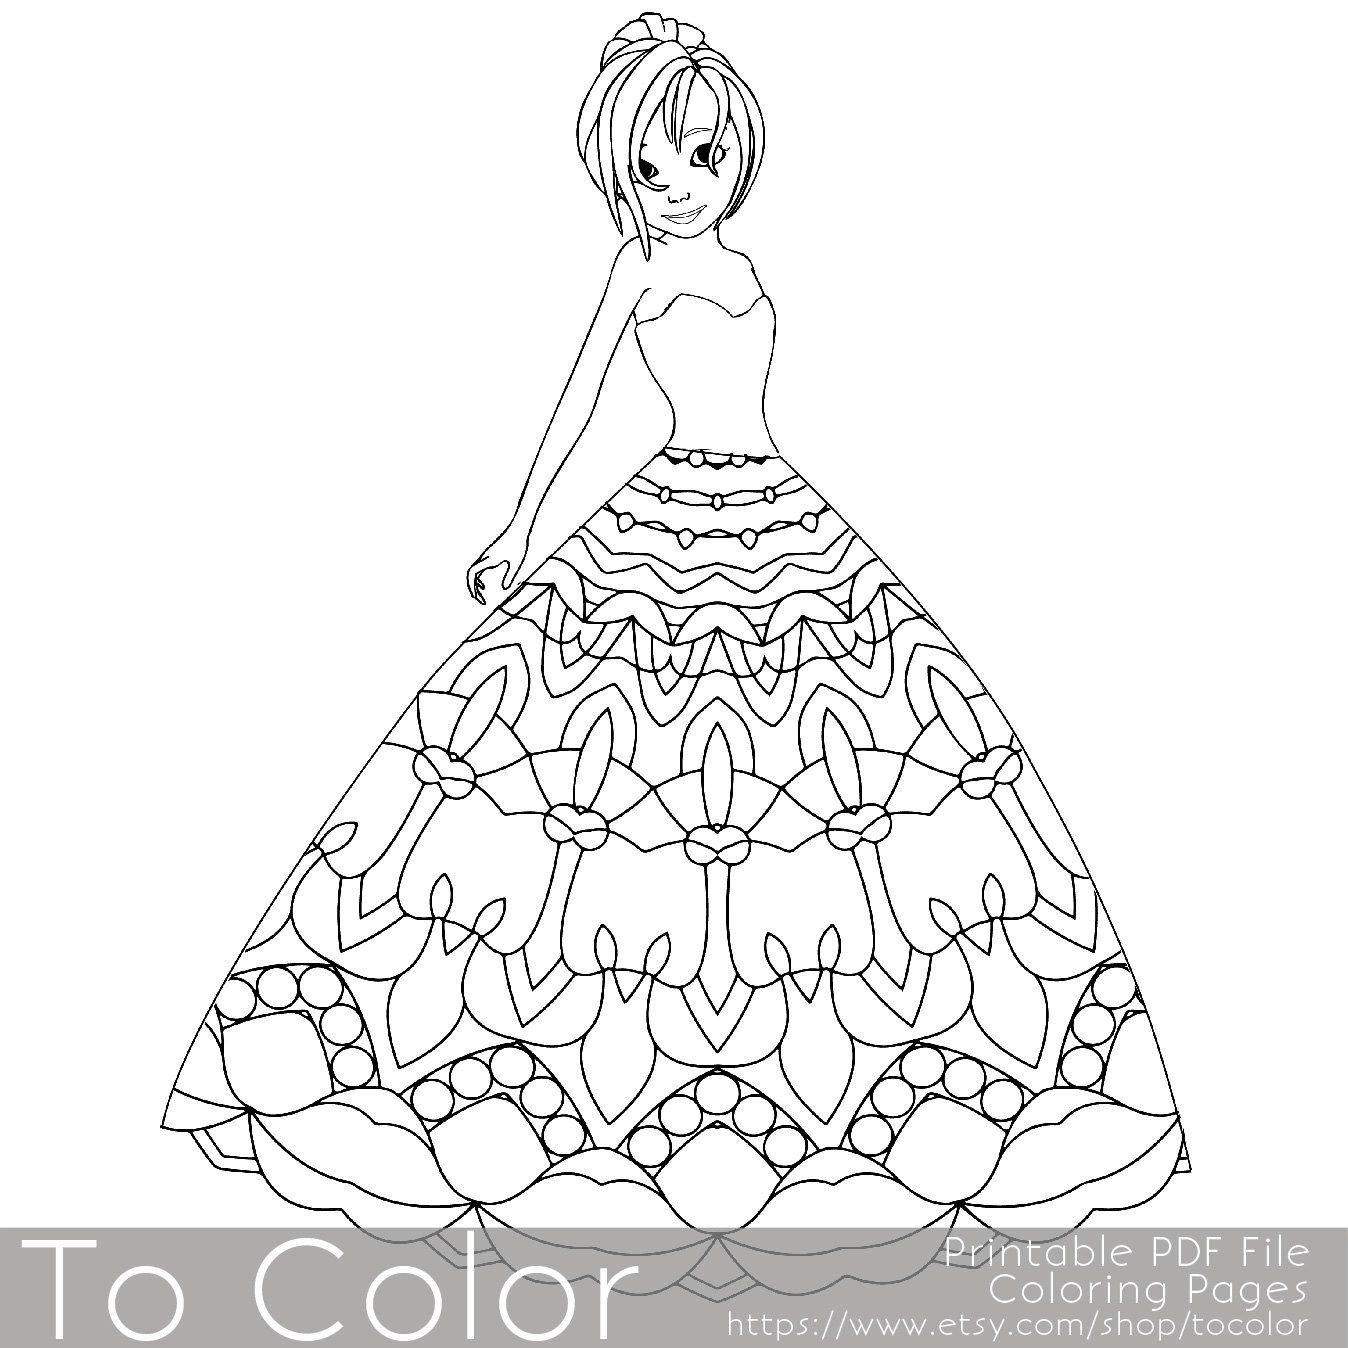 Mandala Princess Coloring Pages For Adults Girl Coloring Page Pdf Jpg Instant Downlo Princess Coloring Pages Coloring Pages For Girls Halloween Coloring